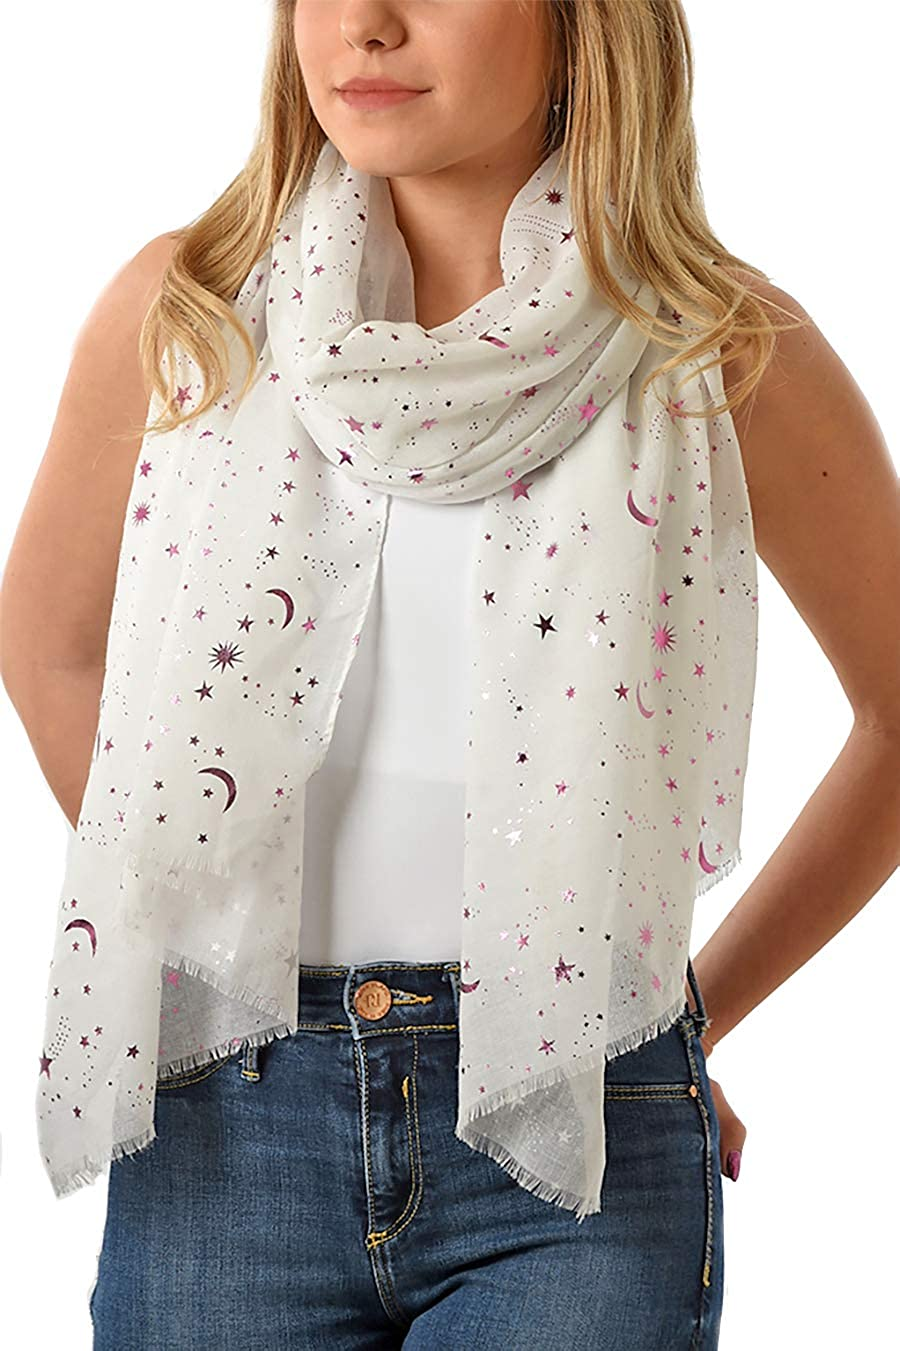 8a9f67f0753 Evening Star Sparkle Scarves for Women - Lightweight - Metallic Foil Print  Scarf - Stars and Moons - Ladies Scarves - Gift - 50th Birthday -UK